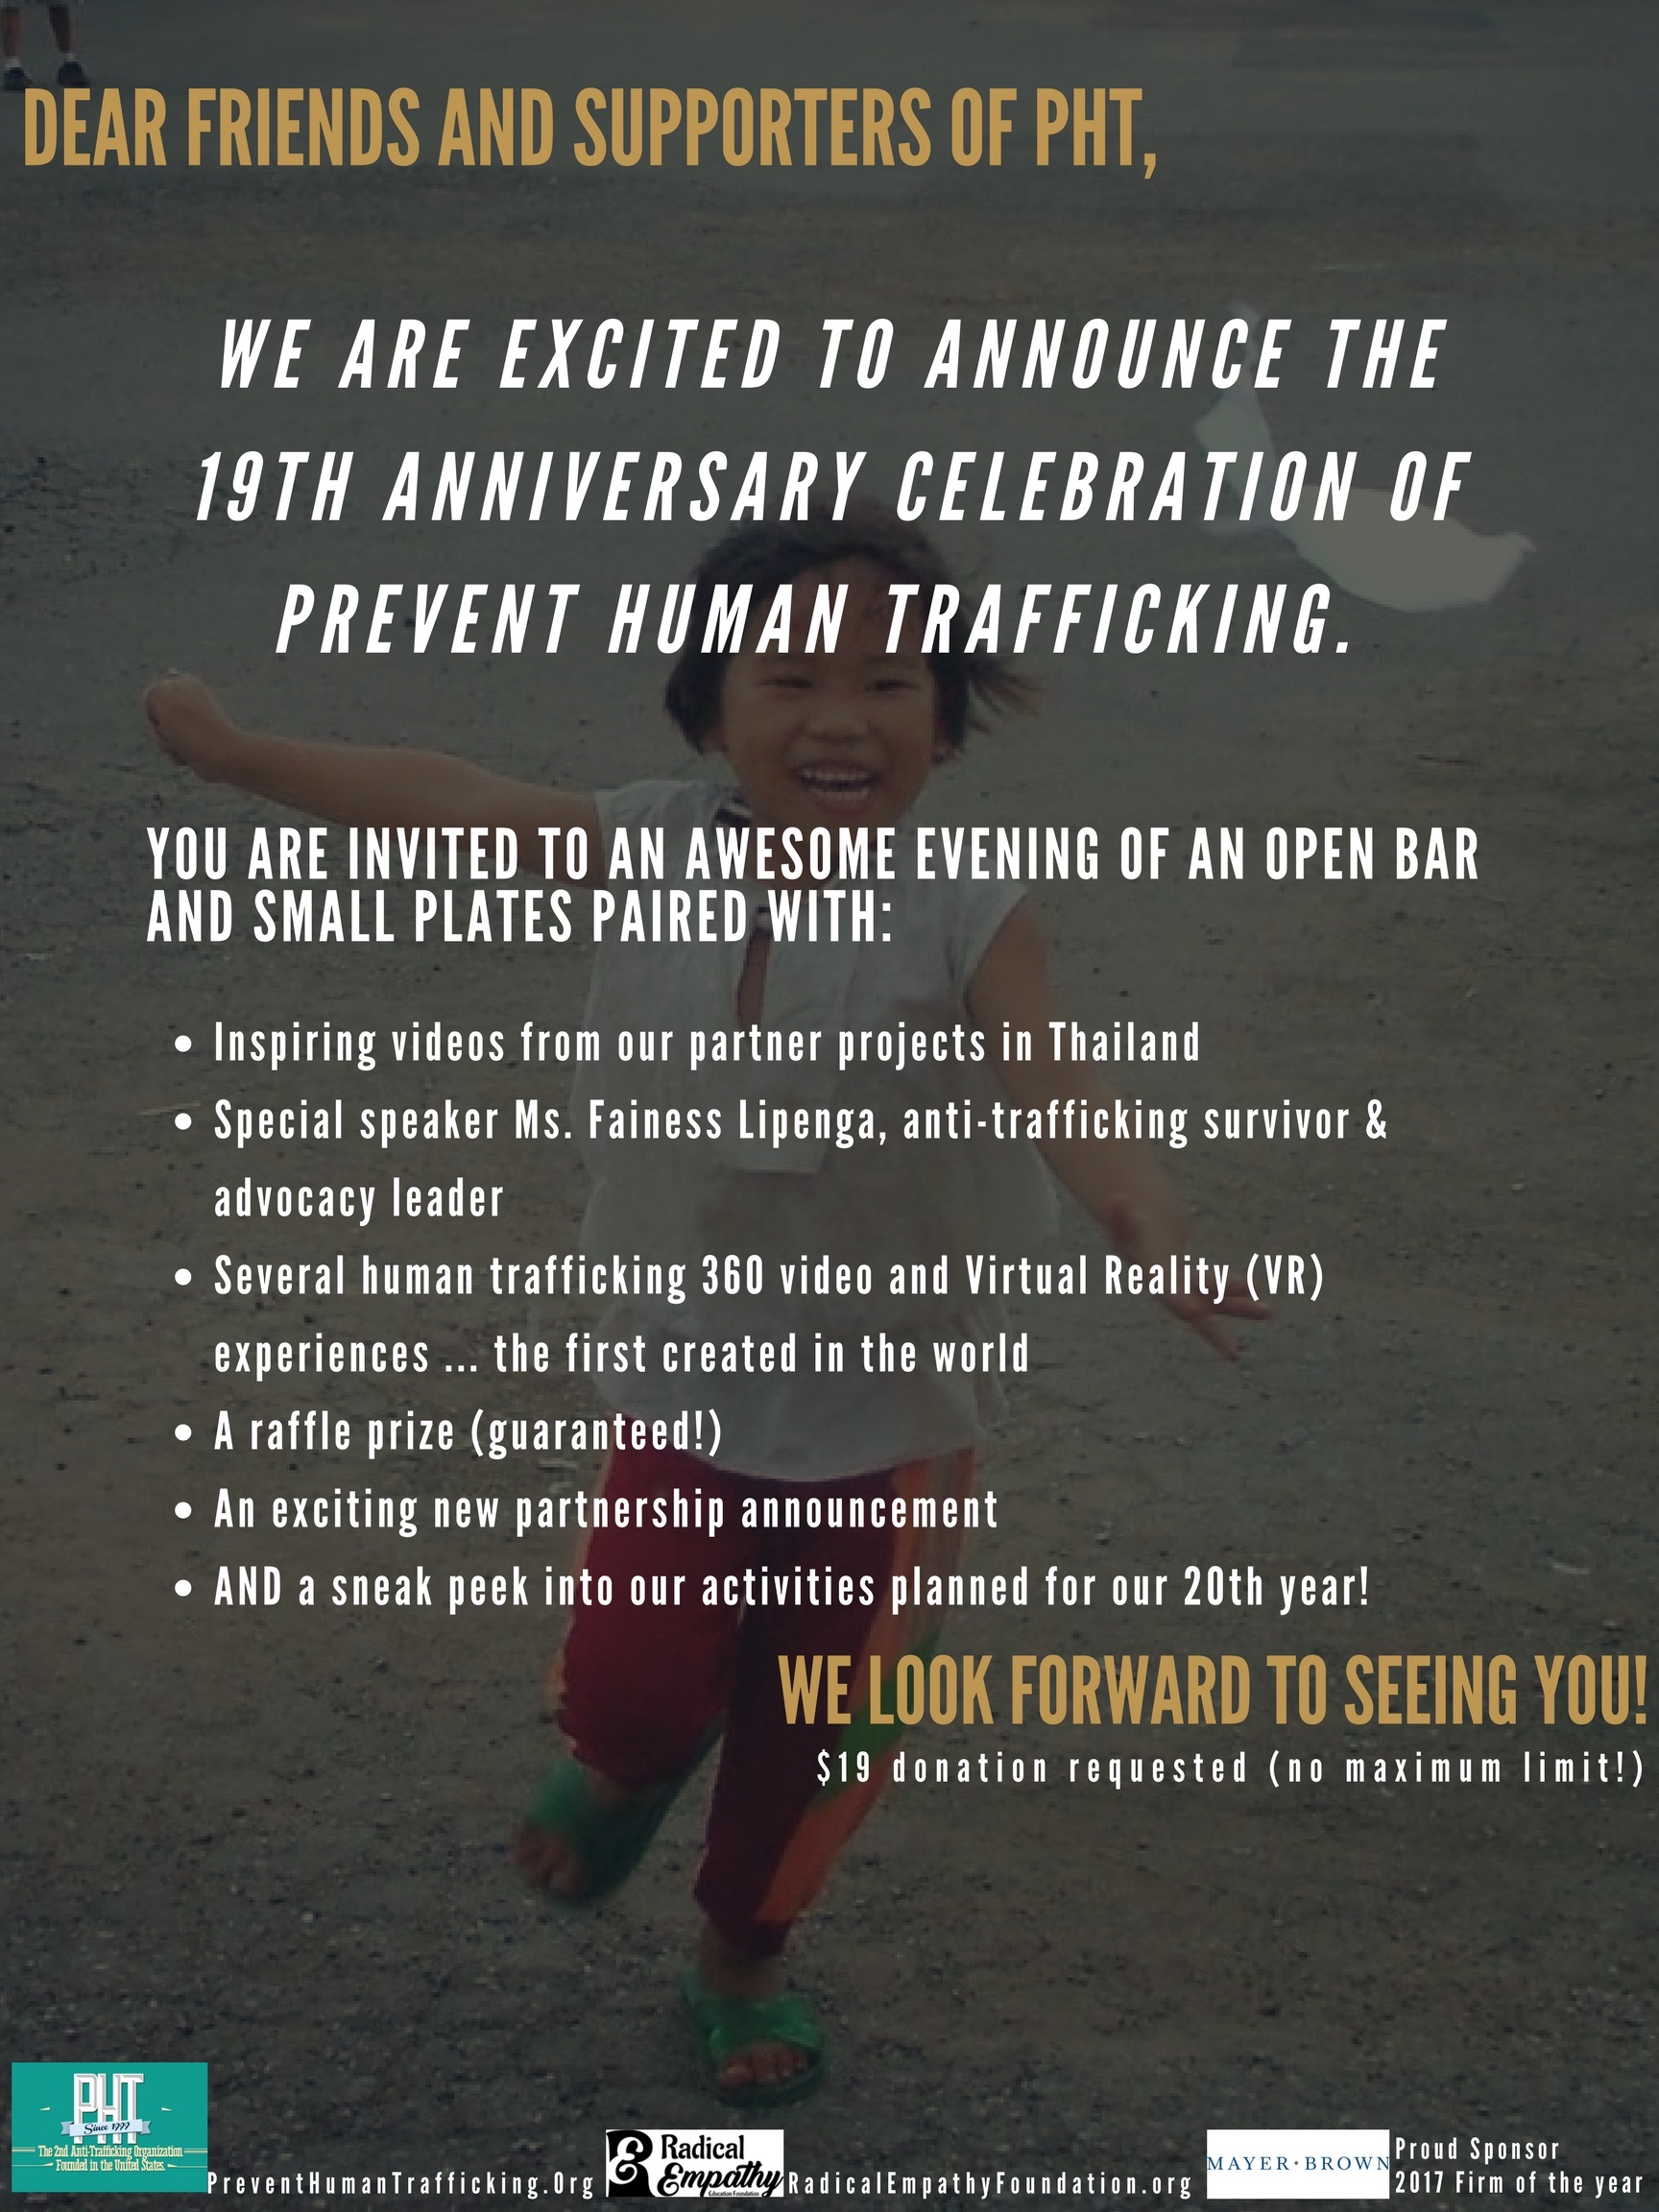 ·  inspiring videos from our partner projects in Thailand ·  a special speaker and trafficking survivor advocate ·  several human trafficking 360 video and Virtual Reality (VR) experiences ... the first created in the world ·  a raffle prize (guaranteed!) ·  an exciting new partnership announcement ·  AND a sneak peek into our activities planned for our 20th year!Come out and have join the fun and be inspired! $19 donation requested (no maximum limit!)